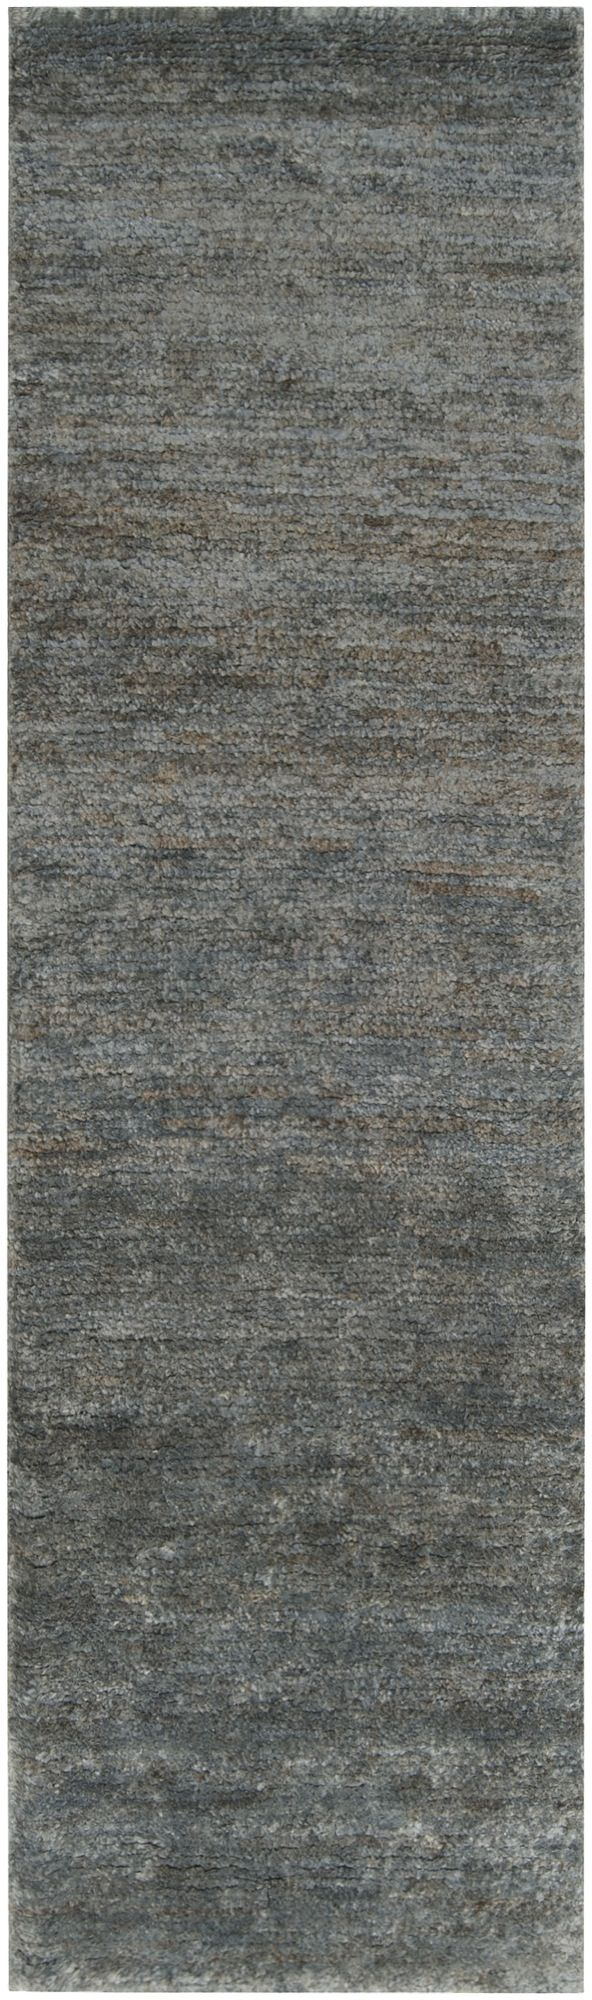 surya marley natural fiber area rug collection